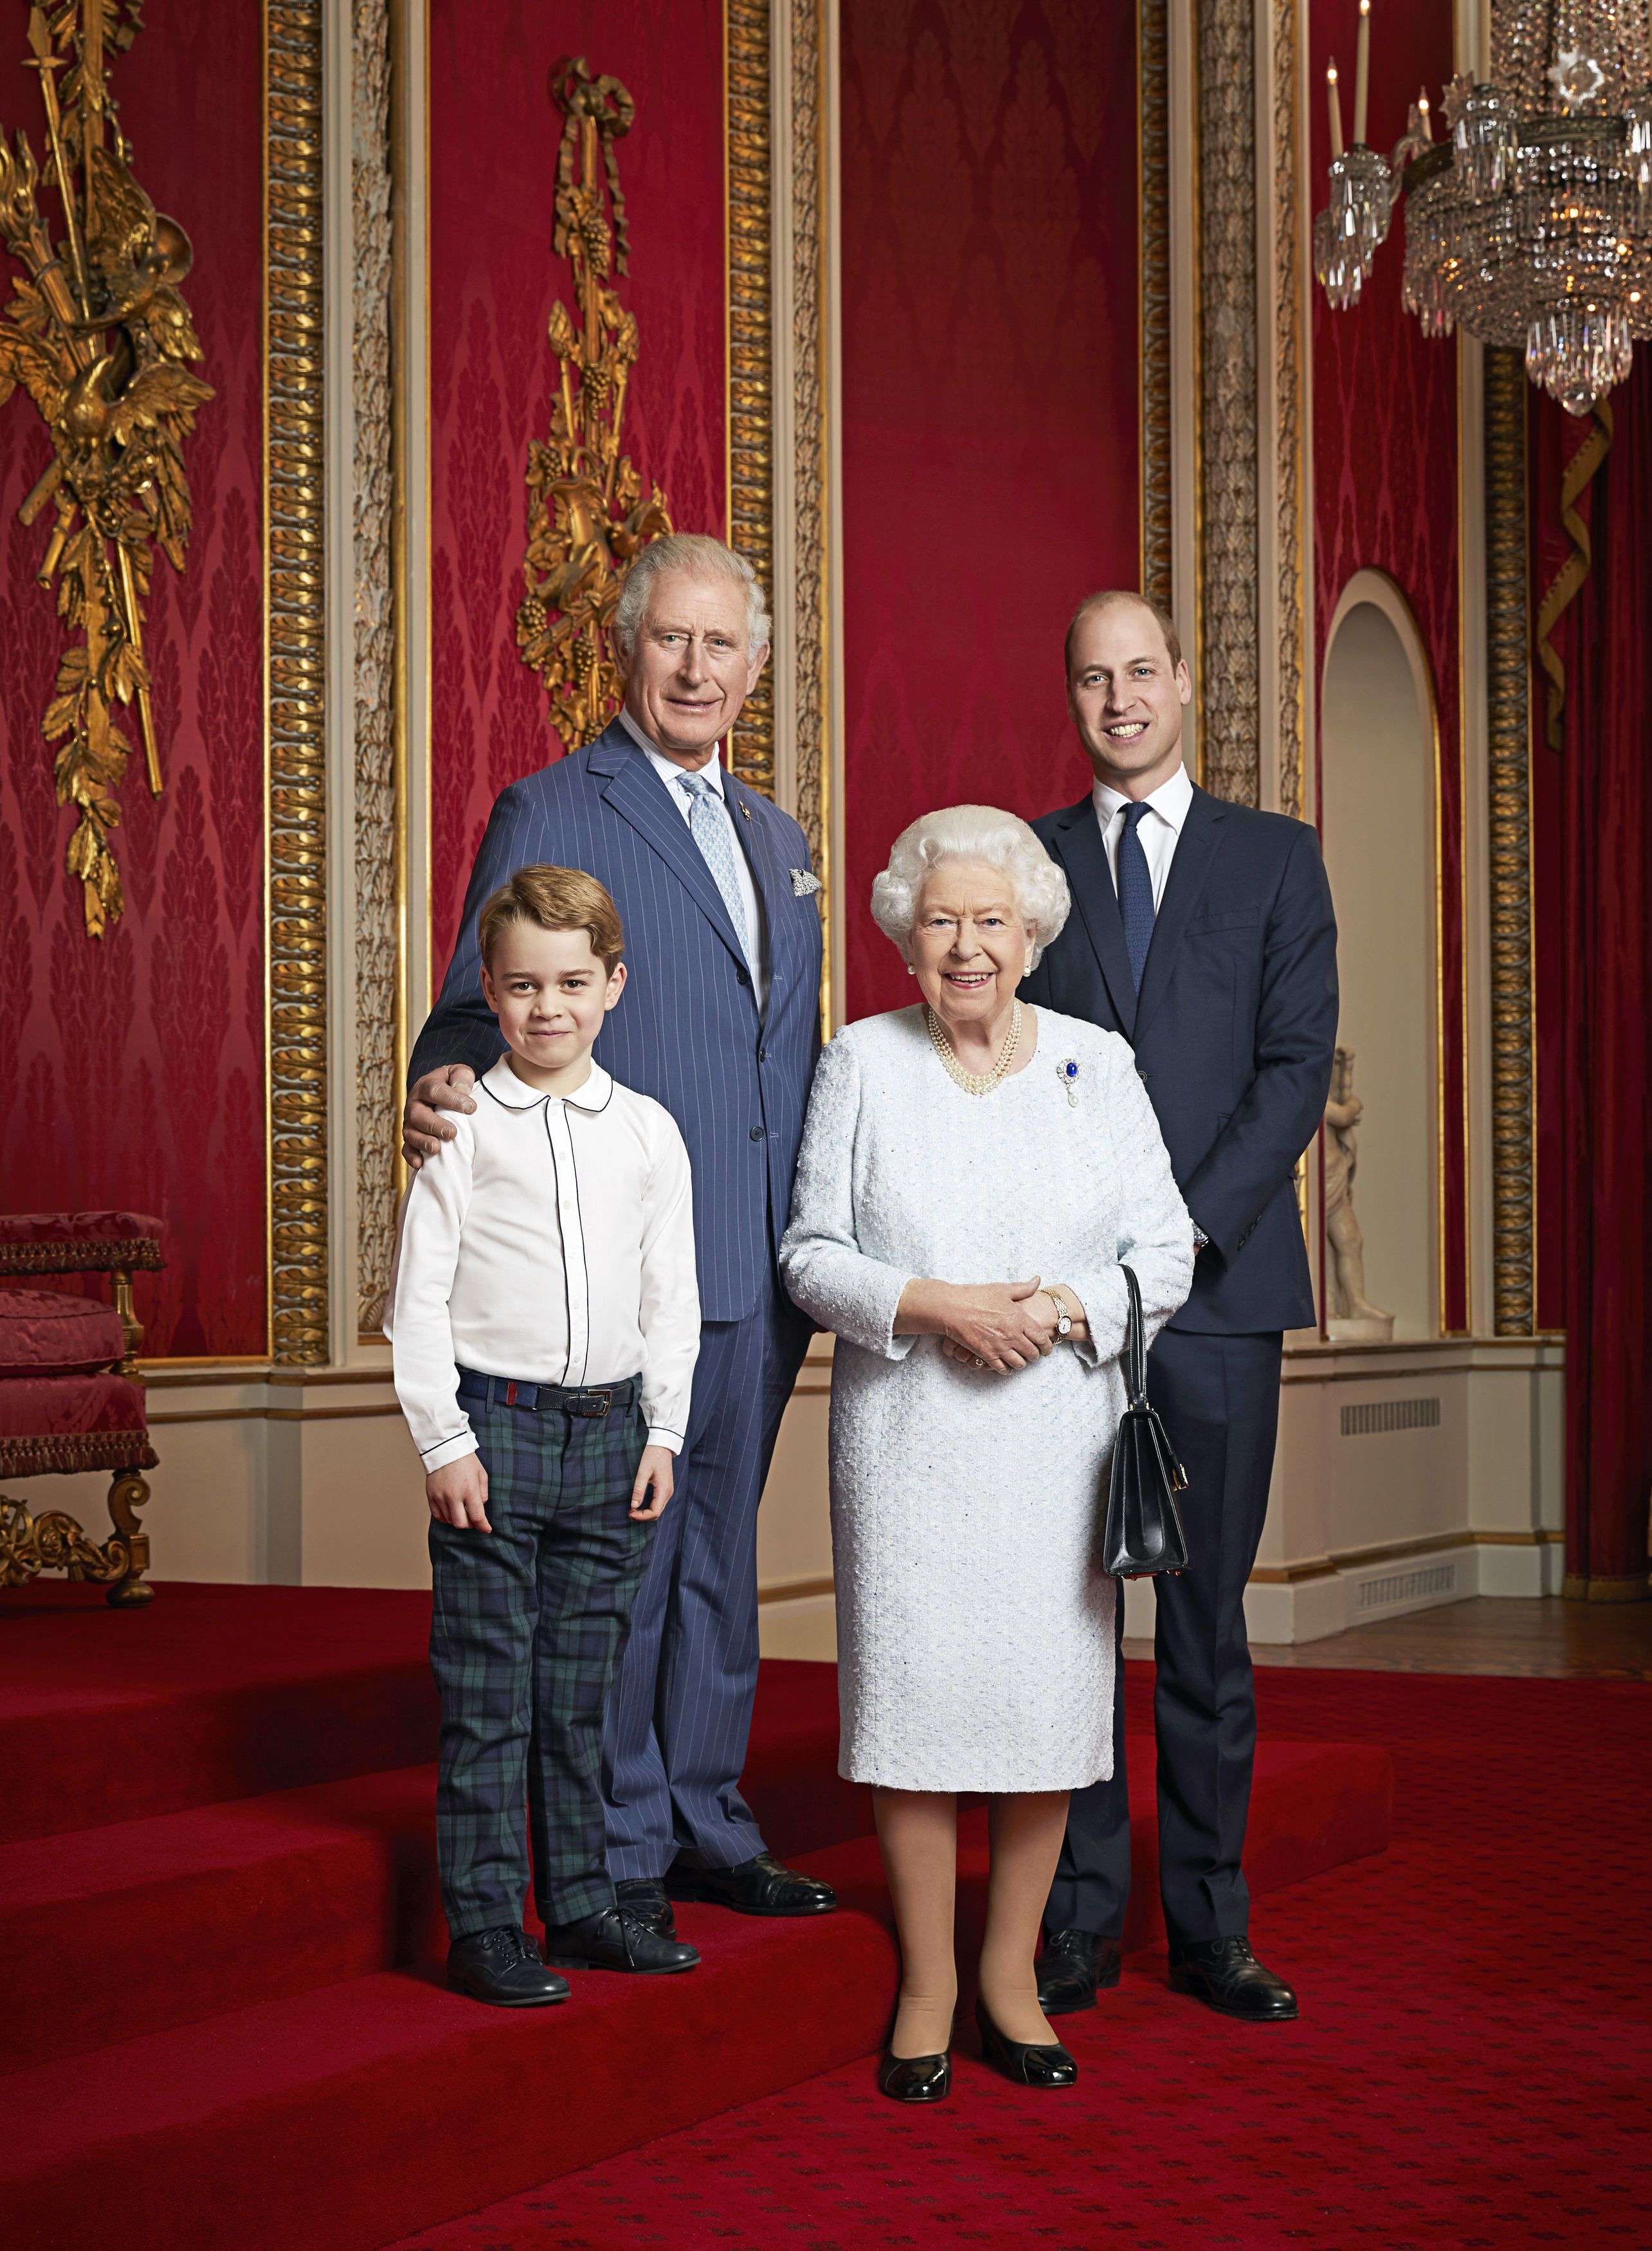 Image result for royal portrait george tartan four generations